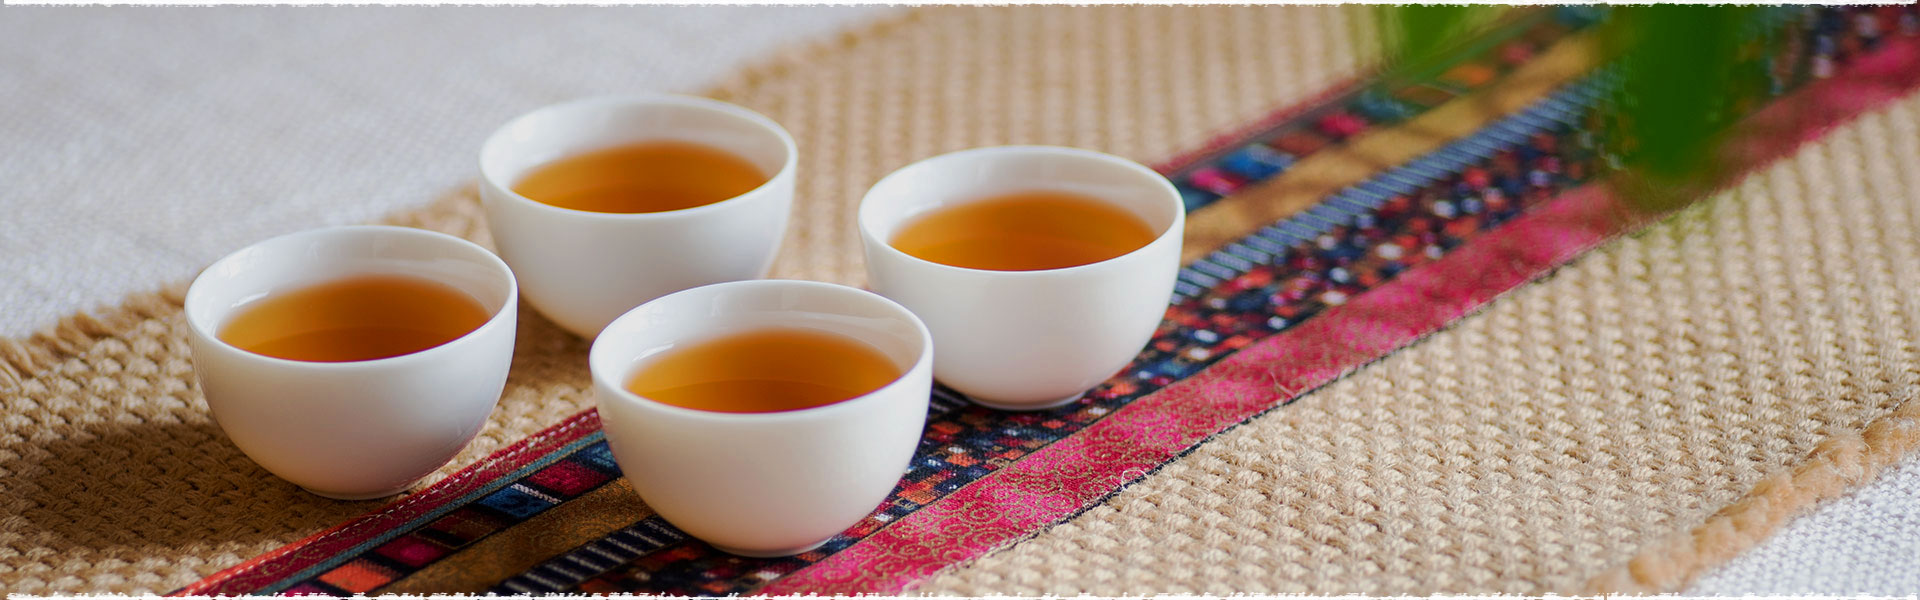 How to Get Rid of Tea Drunk — 4 Home Remedies